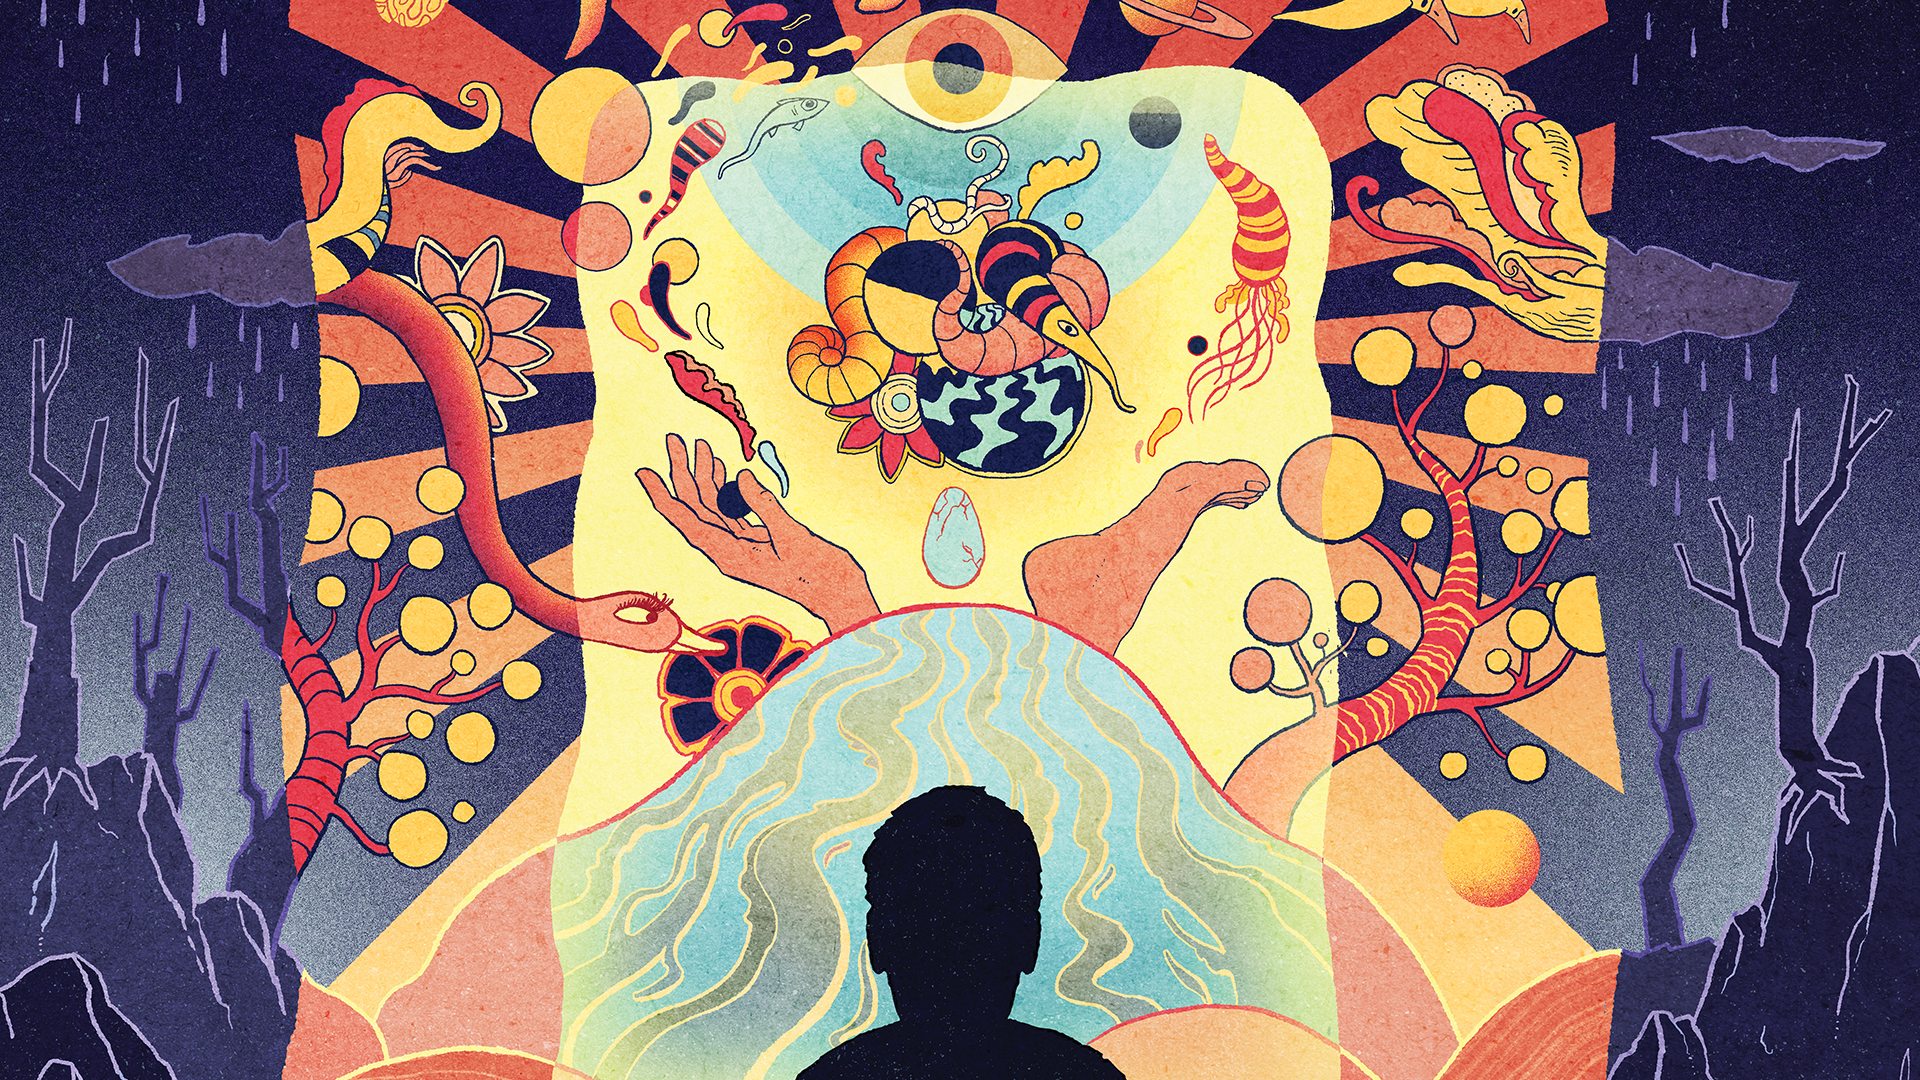 analogizes mind state of someone suffering a terminal illness contemplating through the perspective of psychedelic mushrooms